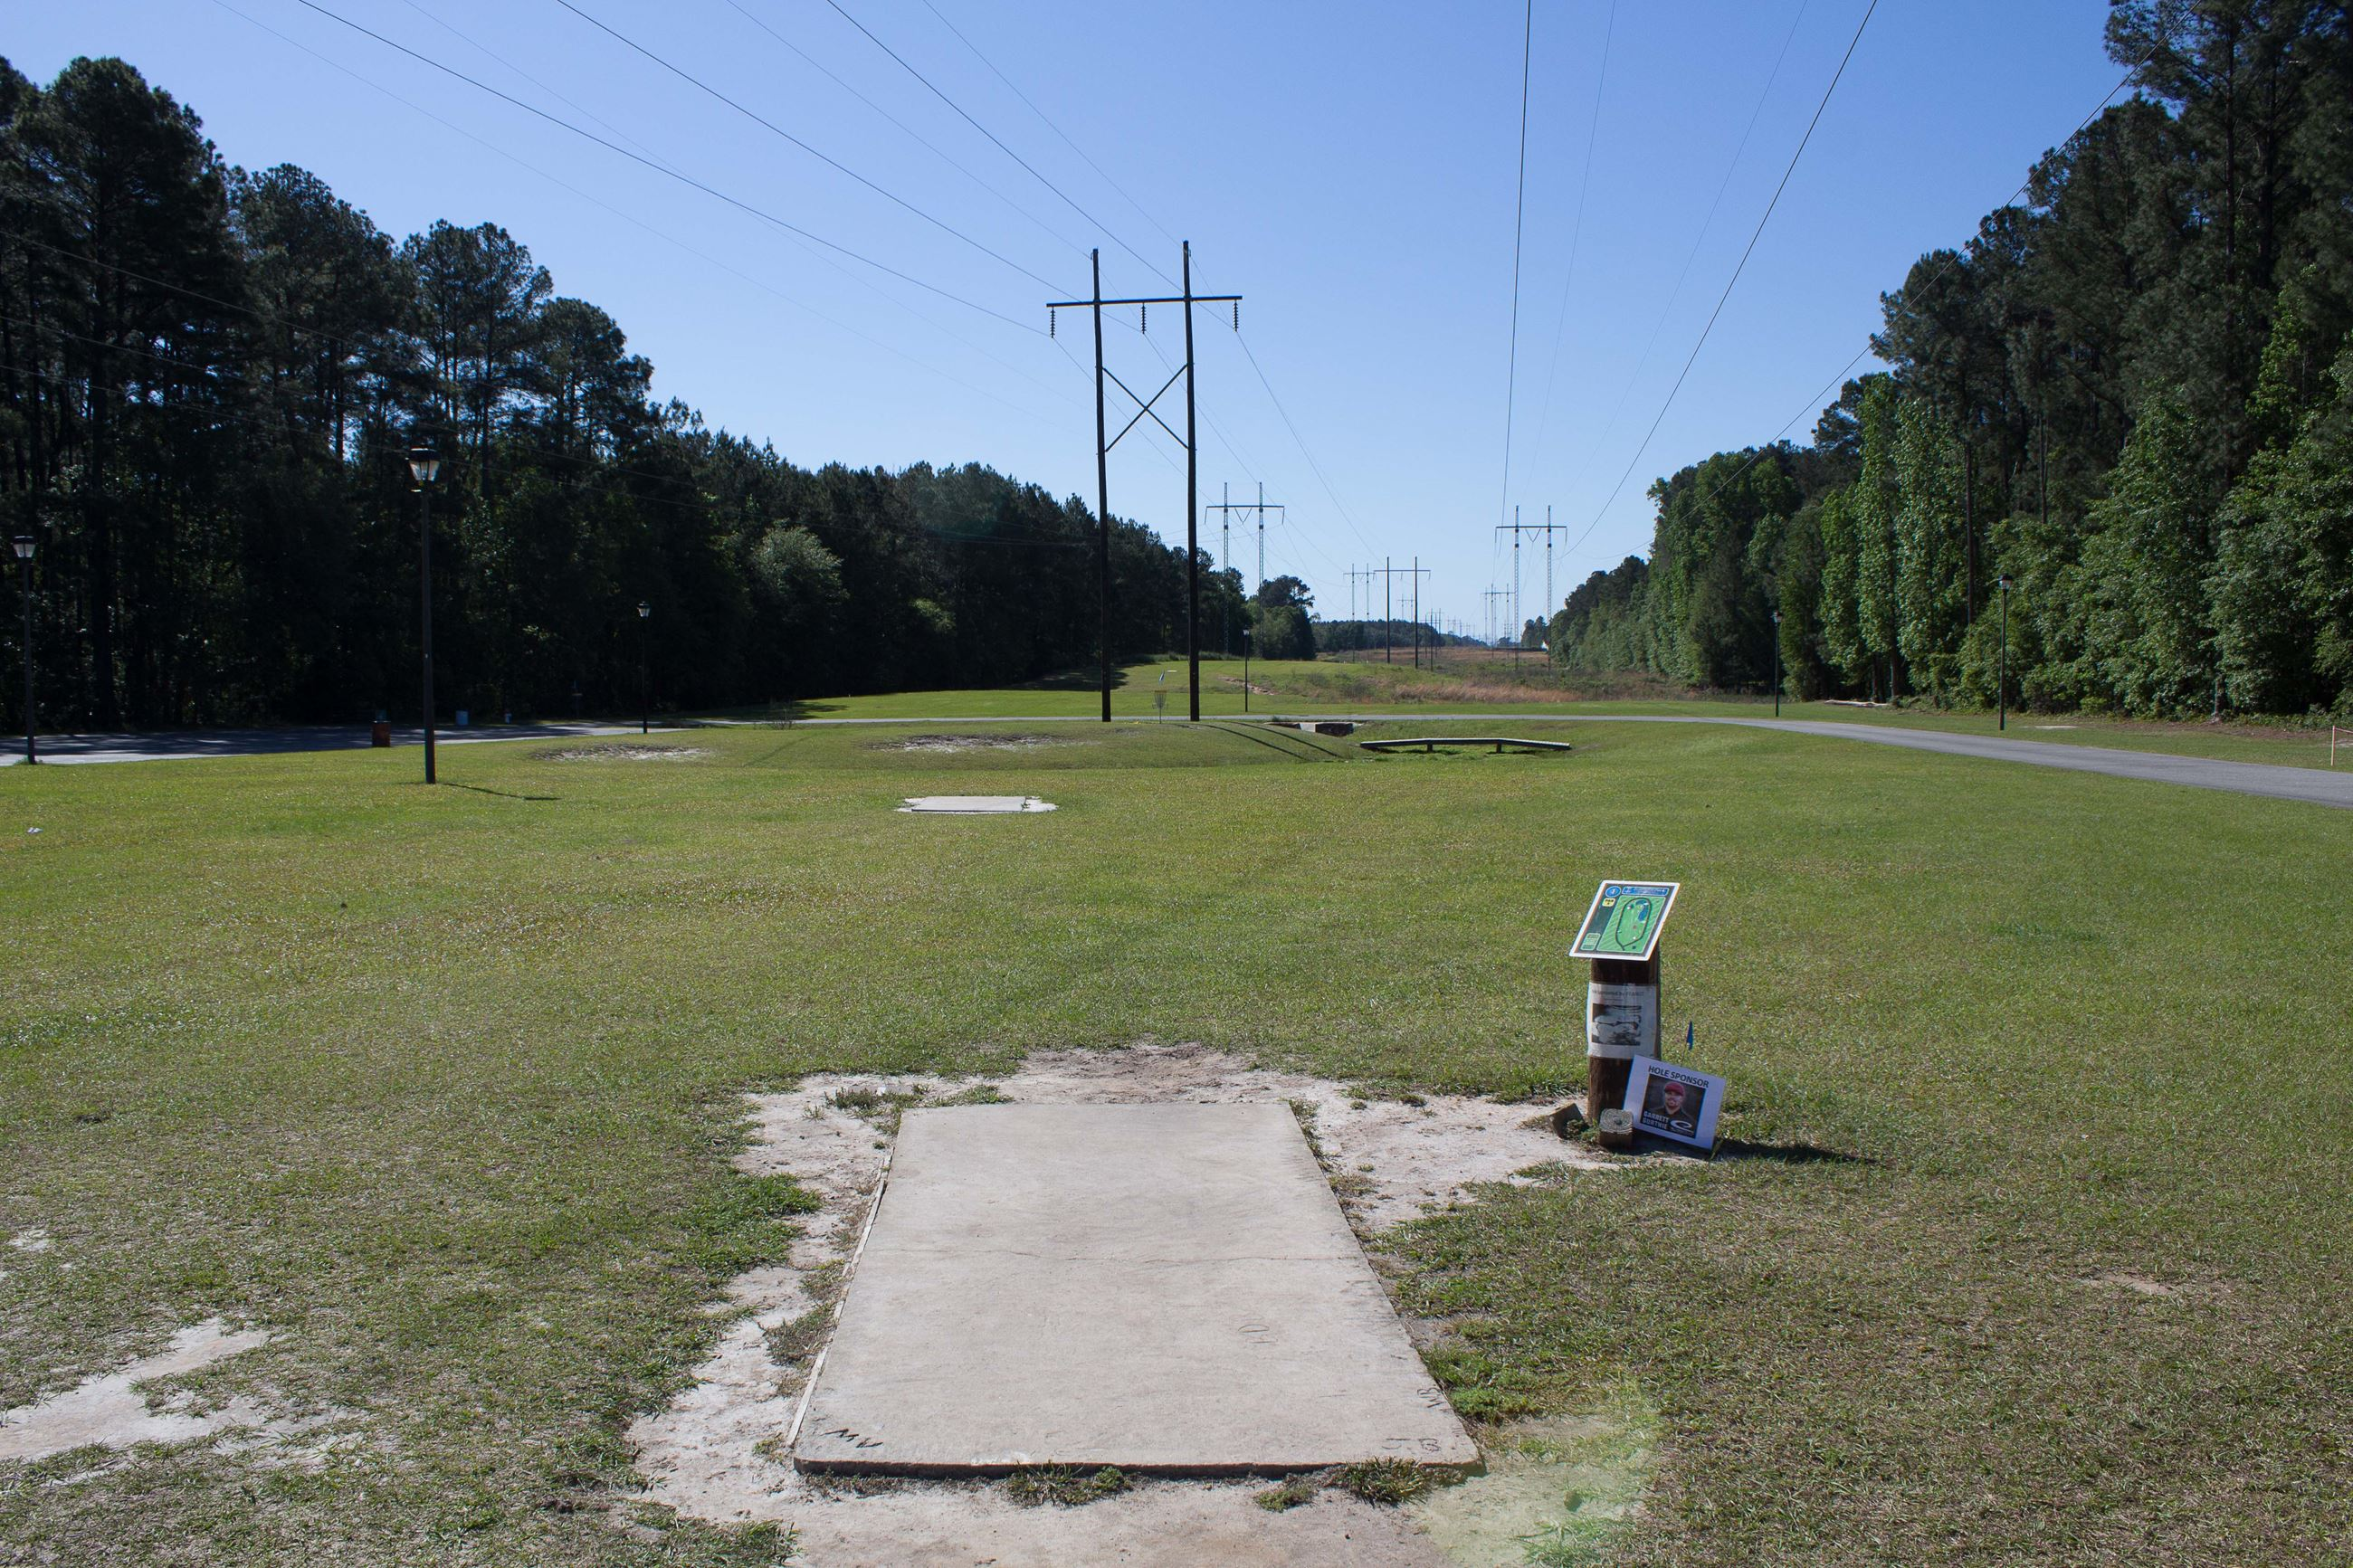 An image of an tee box for a disc golf hole at a park.